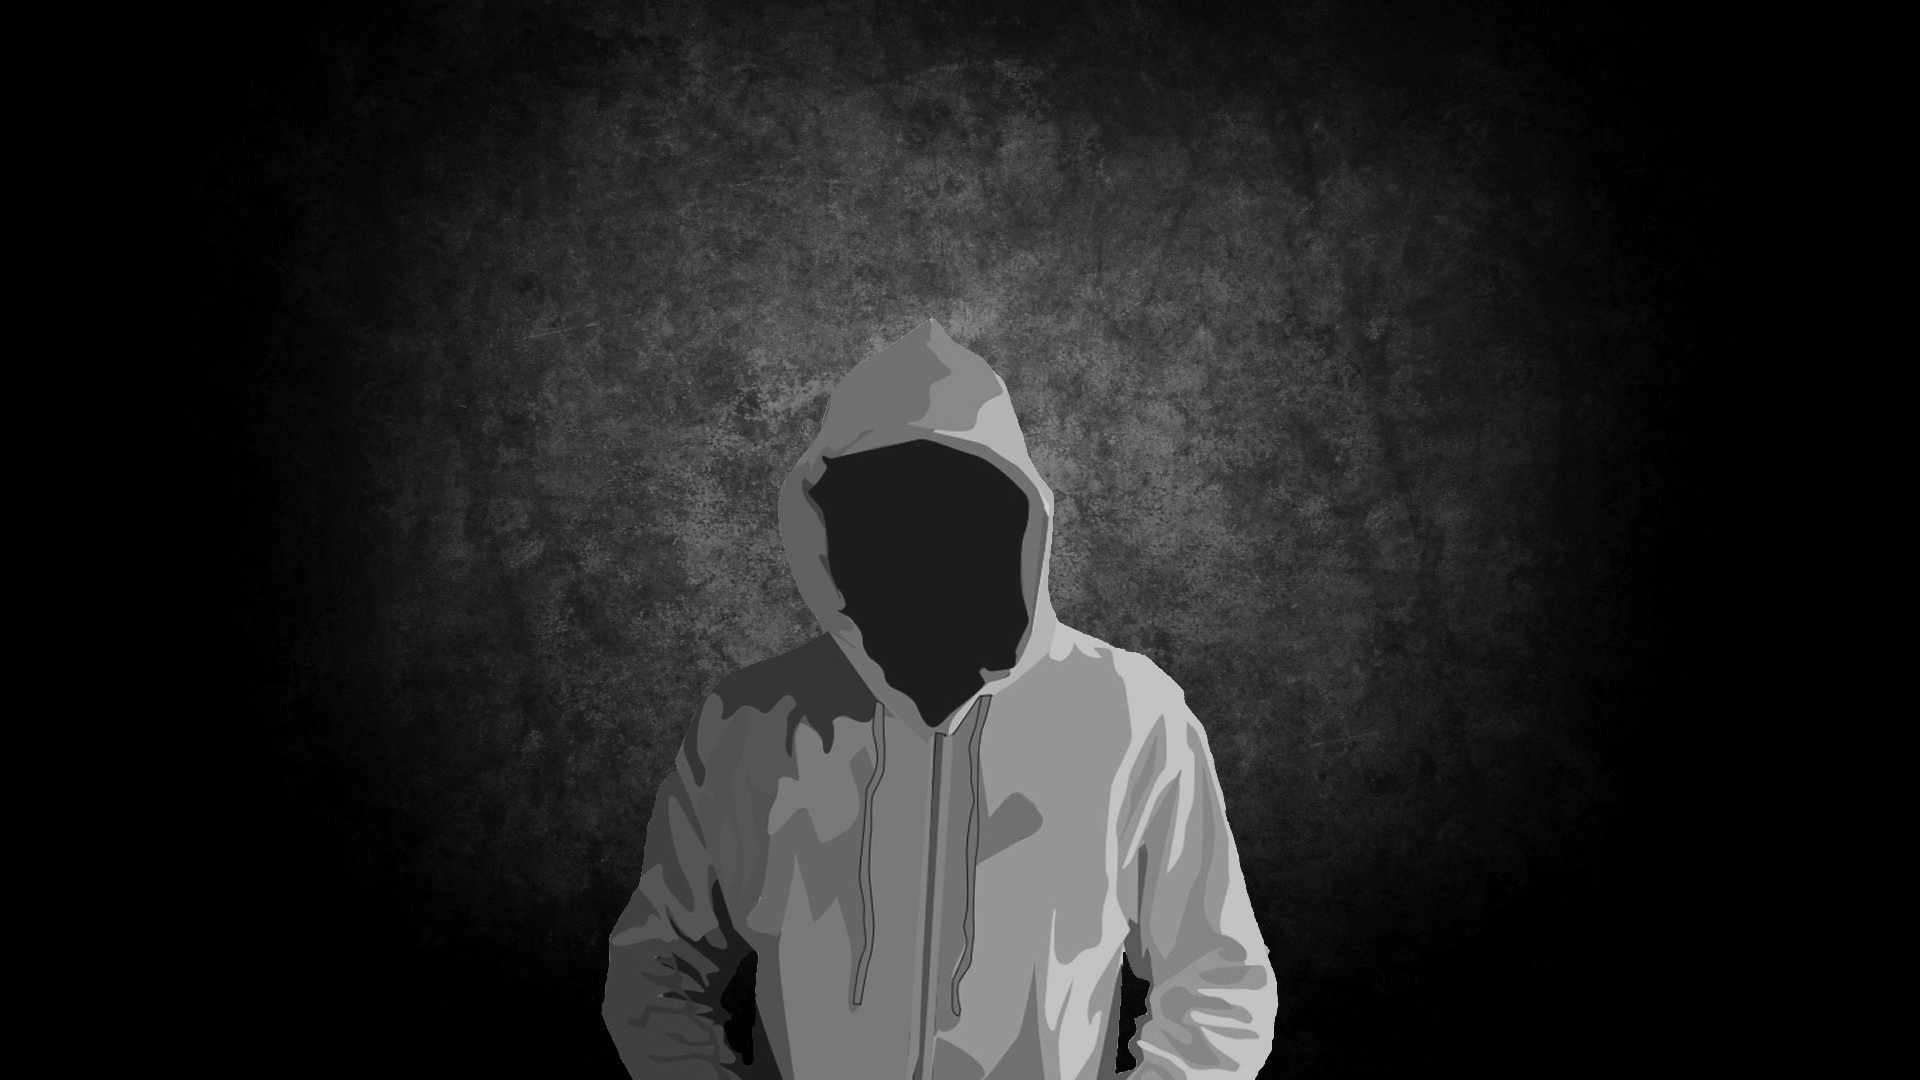 Get The Latest Man Hoody Hood News Pictures And Videos Learn All About From Wallpapers4uorg Your Wallpaper Source